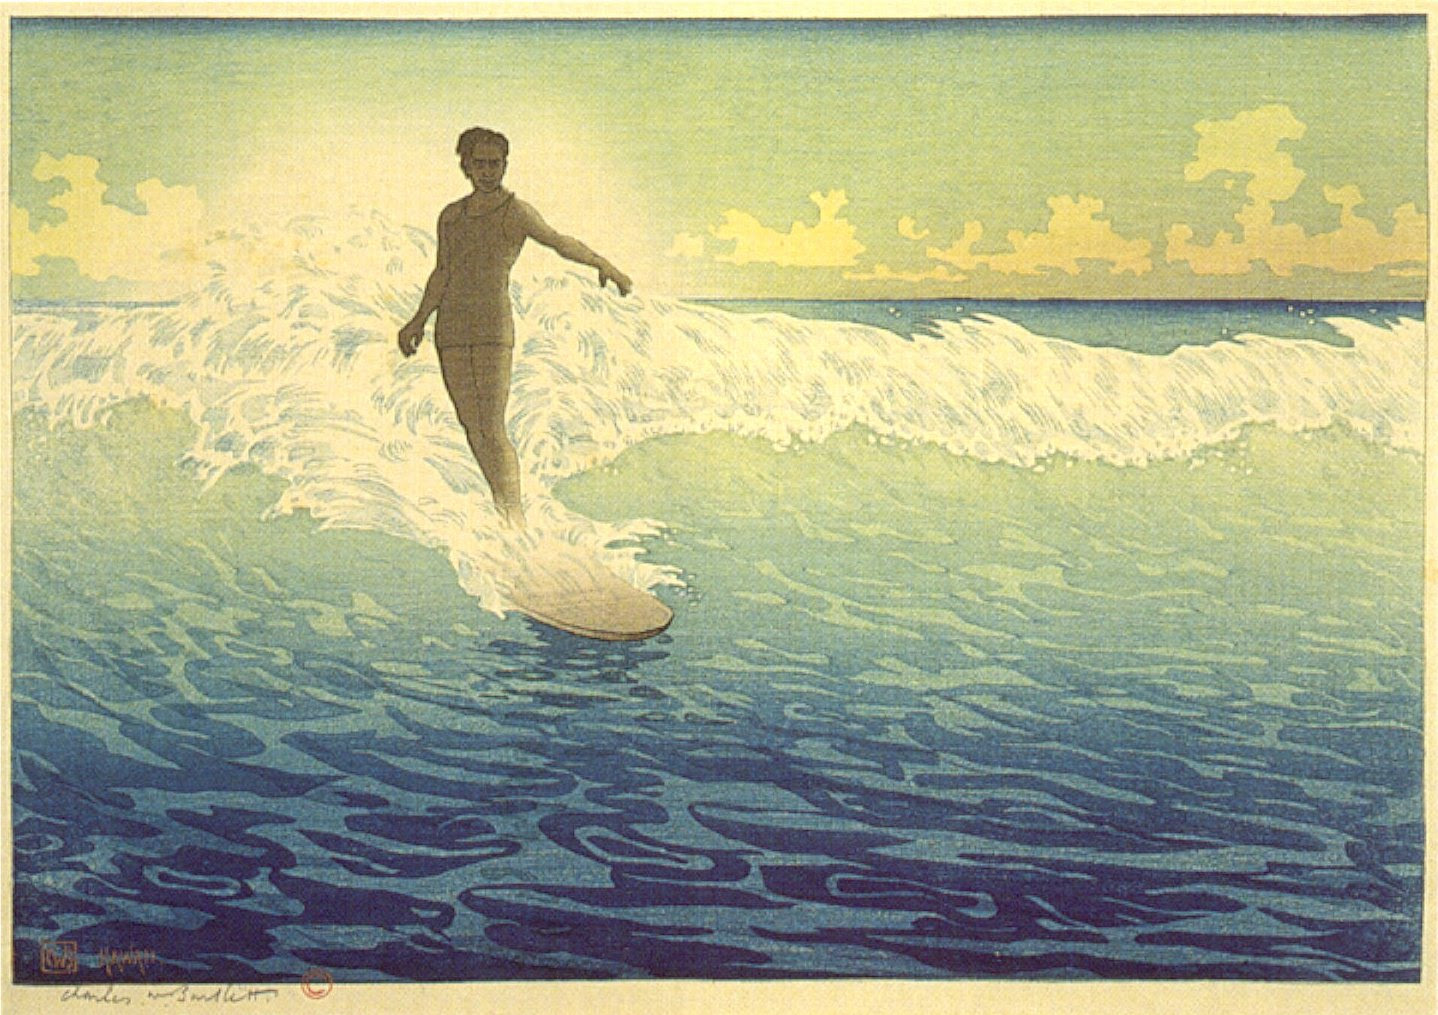 http://upload.wikimedia.org/wikipedia/commons/a/ab/%27Hawaii%2C_The_Surf_Rider%27%2C_woodblock_print_by_Charles_W._Bartlett%2C_1921%2C_Honolulu_Academy_of_Arts.jpg